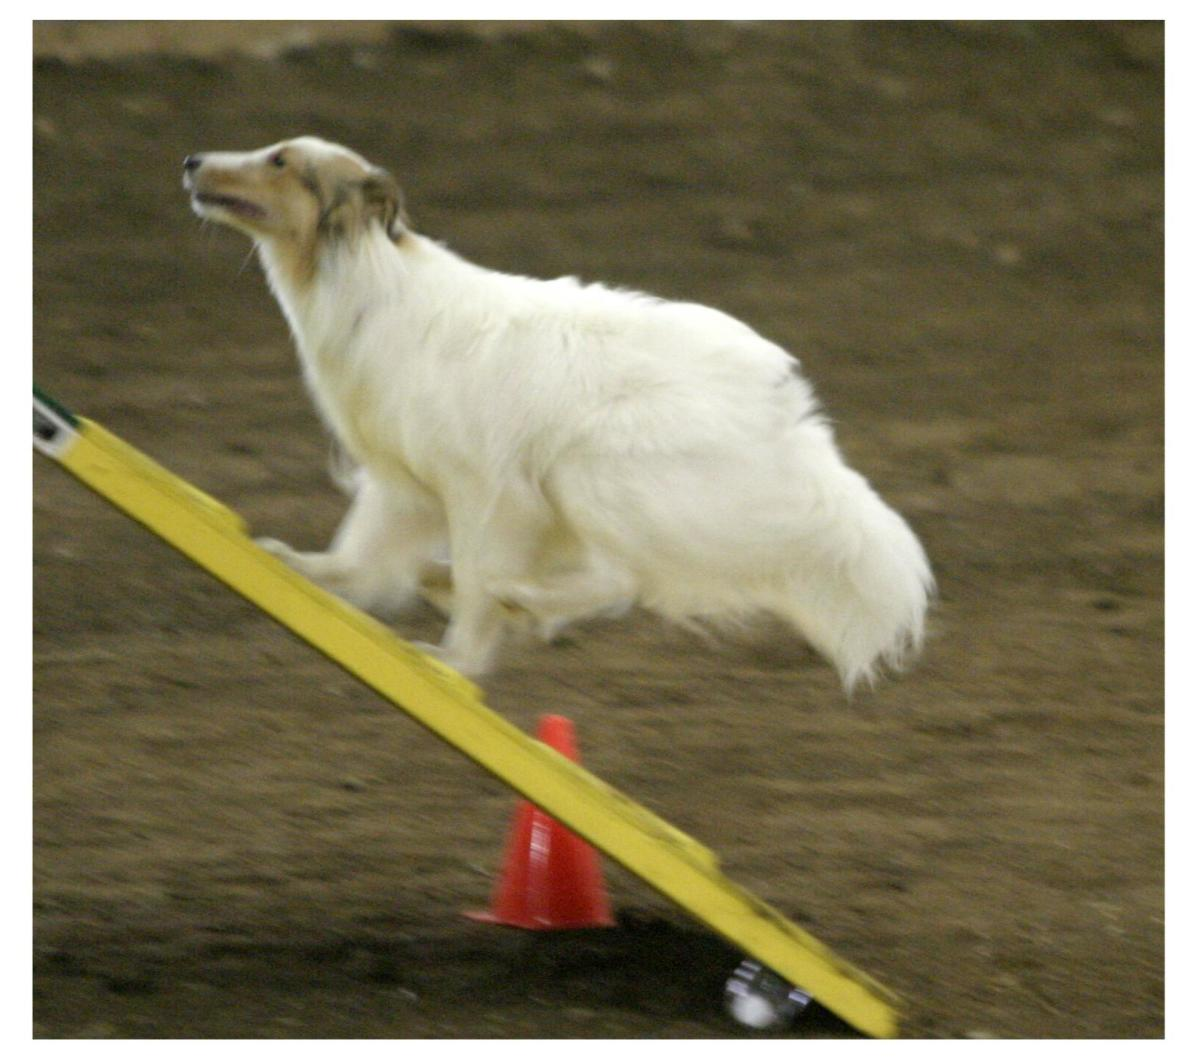 When Is Your Agility Team Ready to Trial? The Pitfalls of Showing Too Early in Dog Agility